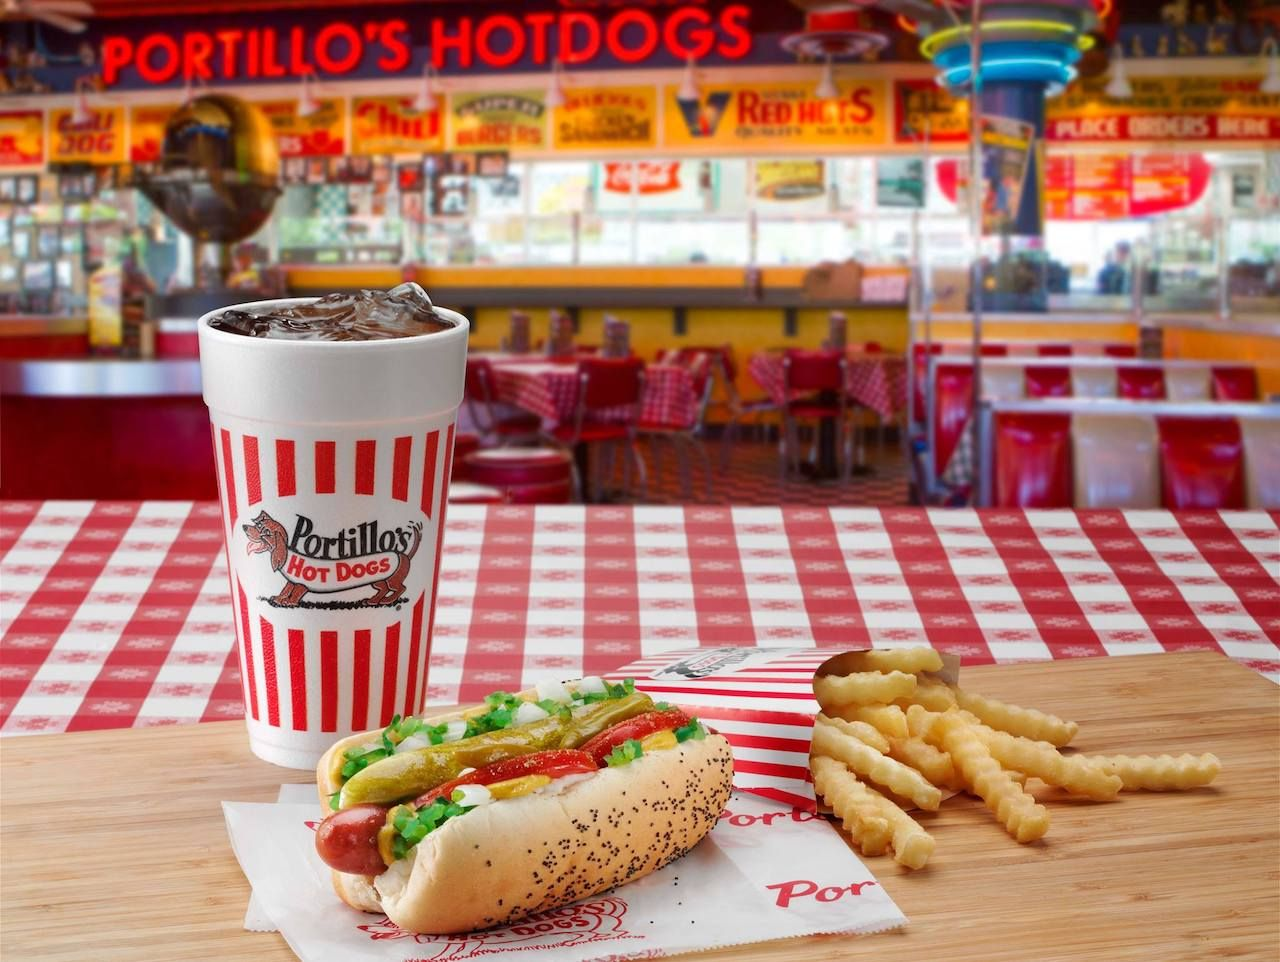 Portillo's in Chicago